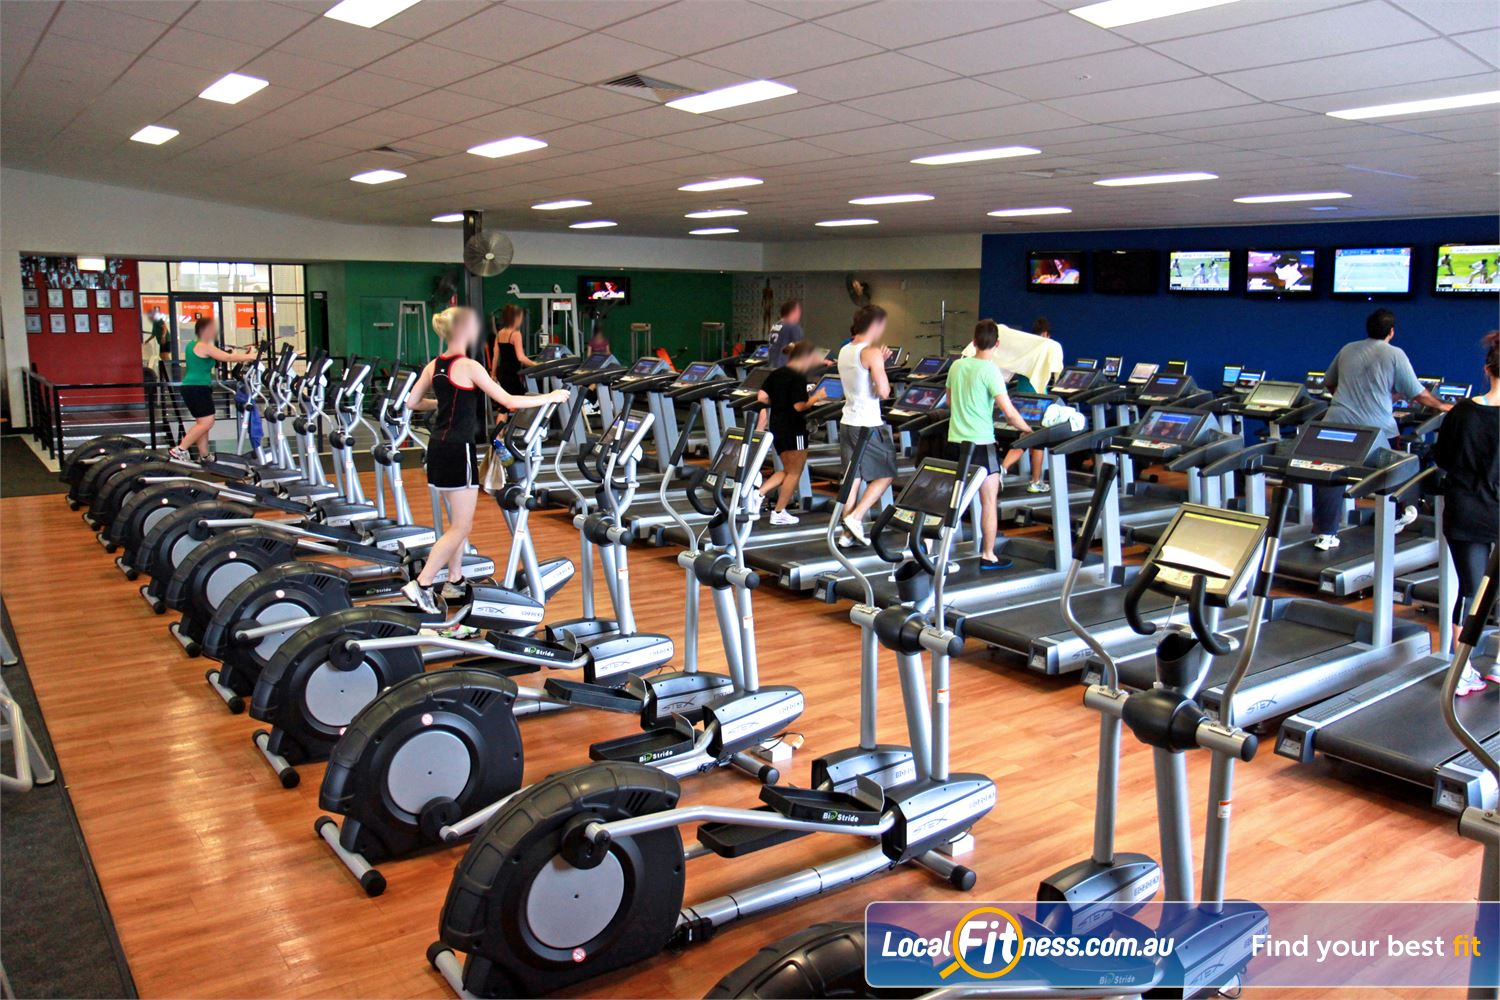 Goodlife Health Clubs Holland Park Multiple machines to reduce wait times.